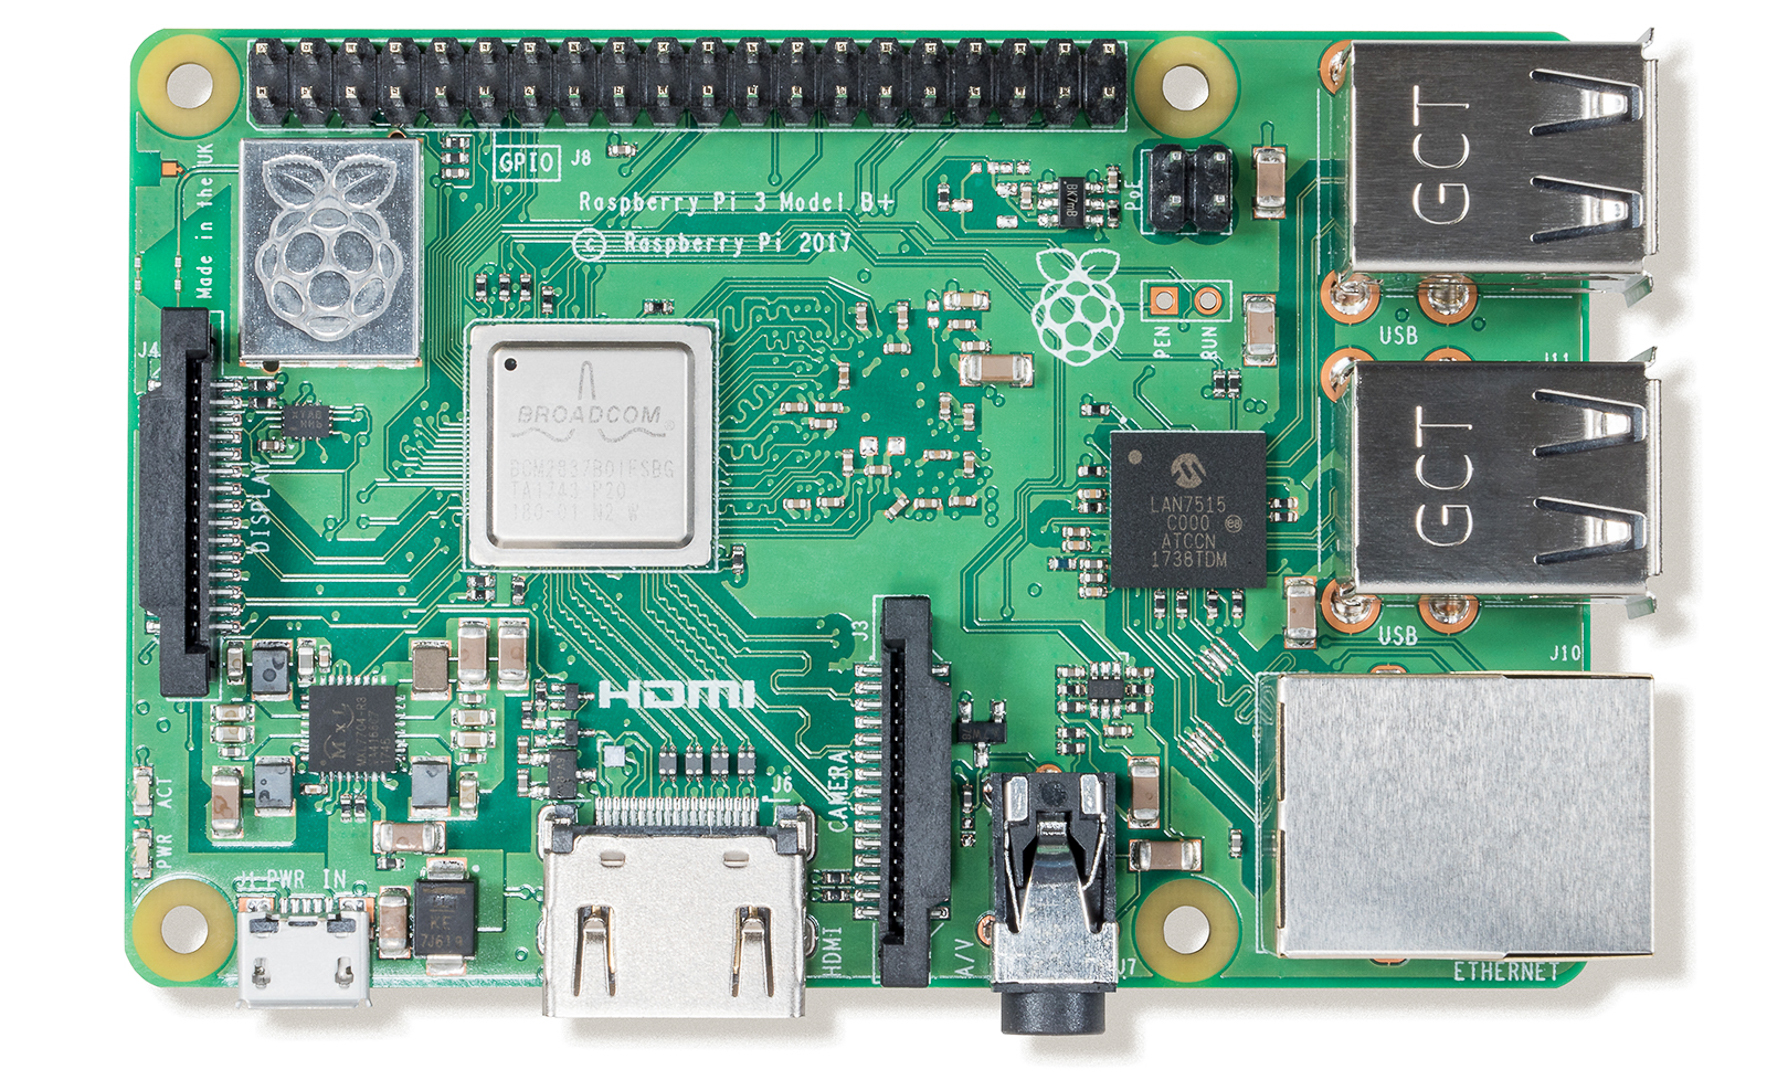 Raspberry Pi Circuit Board Introducing The 3 B Its A Very Nice Bump In Specs Surprisingly So Considering That Not Full To 4 And Itself Has Changed Lot